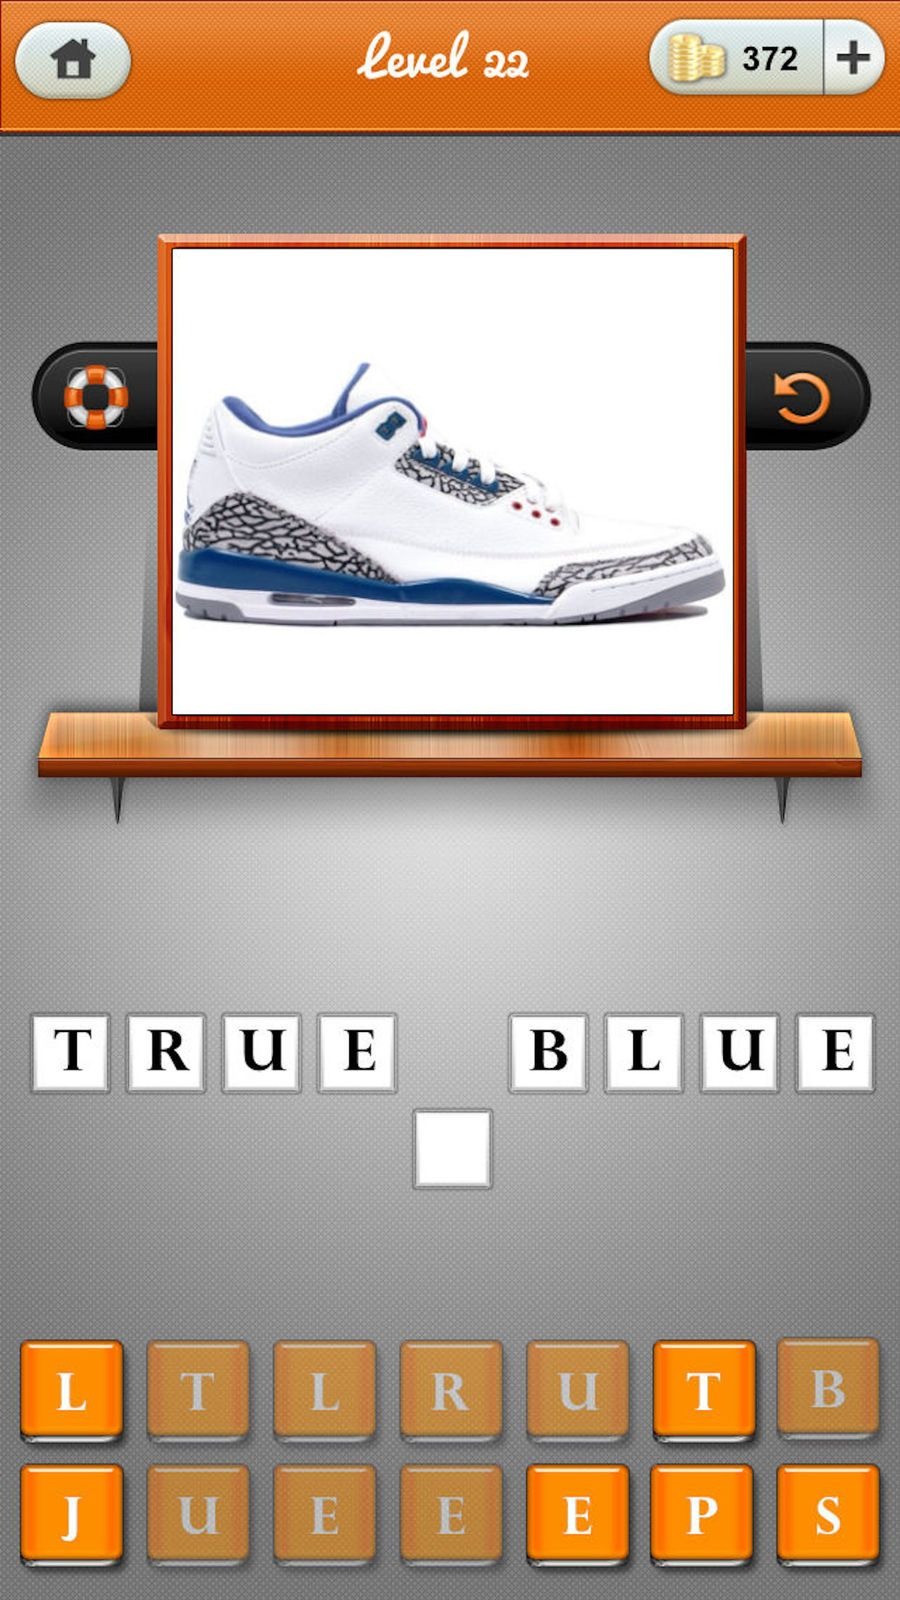 Guess the Sneakers Kicks Quiz for Sneakerheads Games